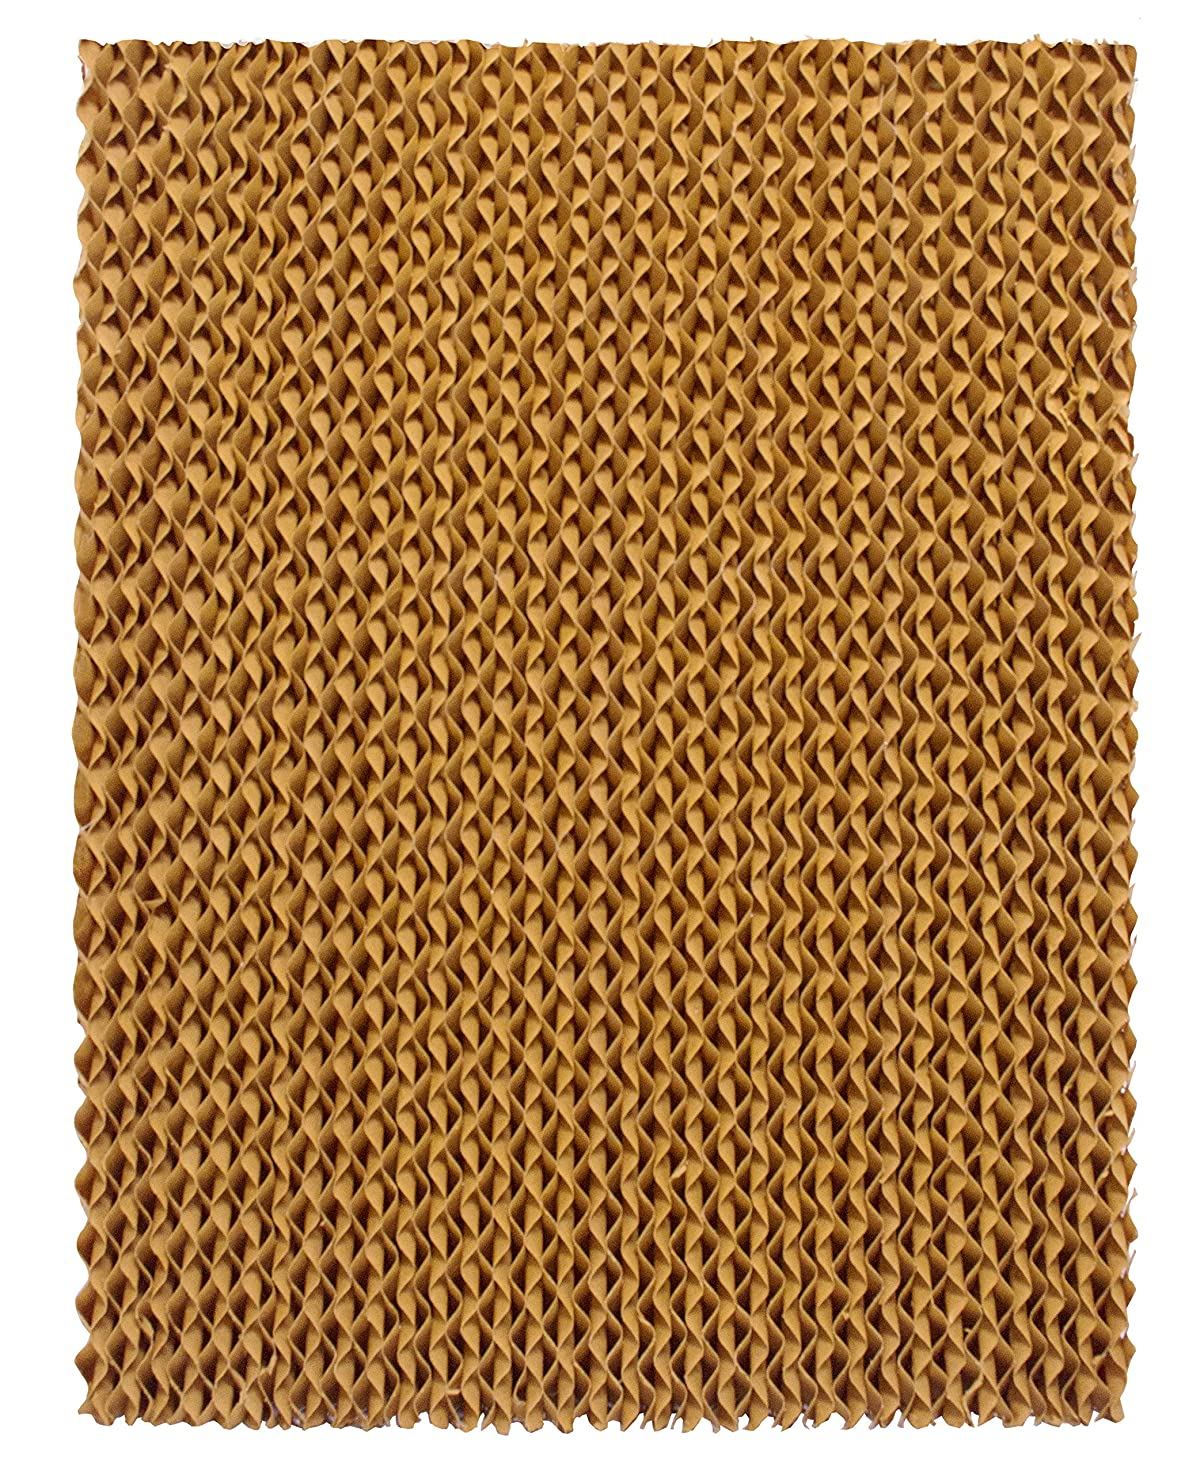 Honeywell Replacement Pad Evaporative Cooler Models CL30XC & CO30XE, Gold bsqhgprzibabe0